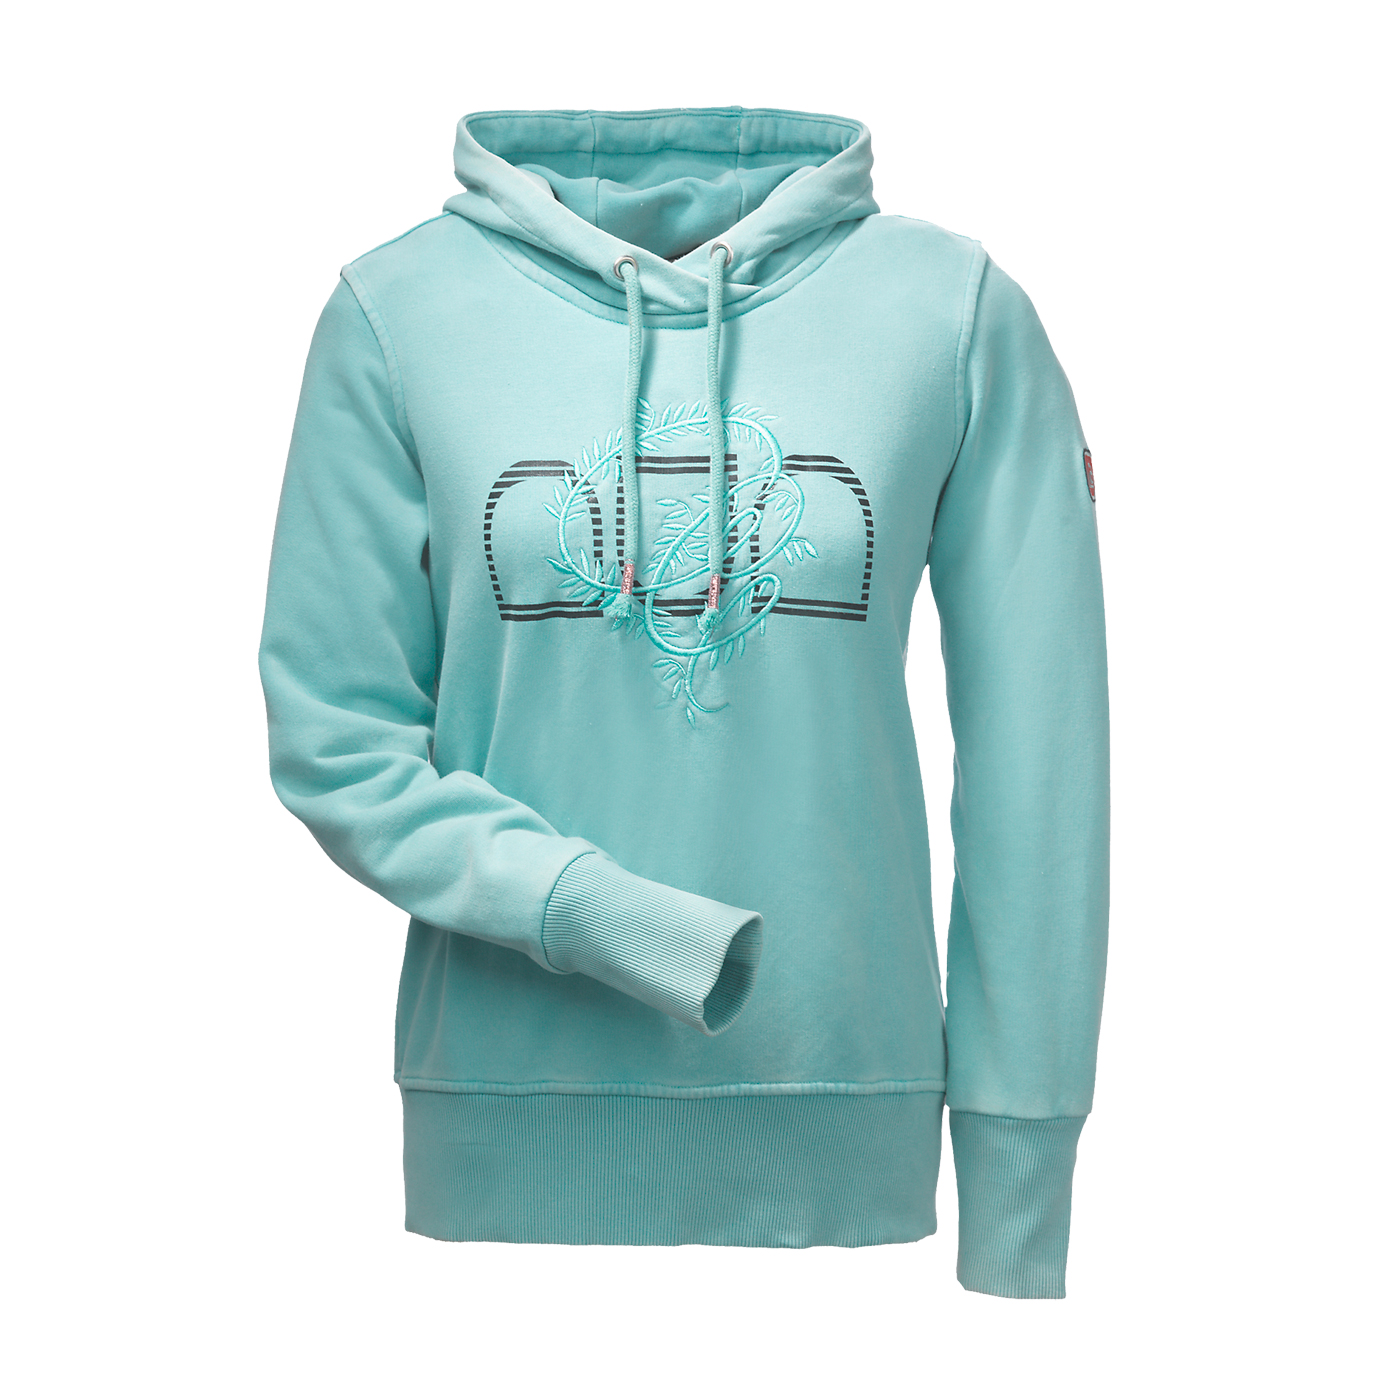 Cavallo Montana Thyme Green Hooded Equestrian Top